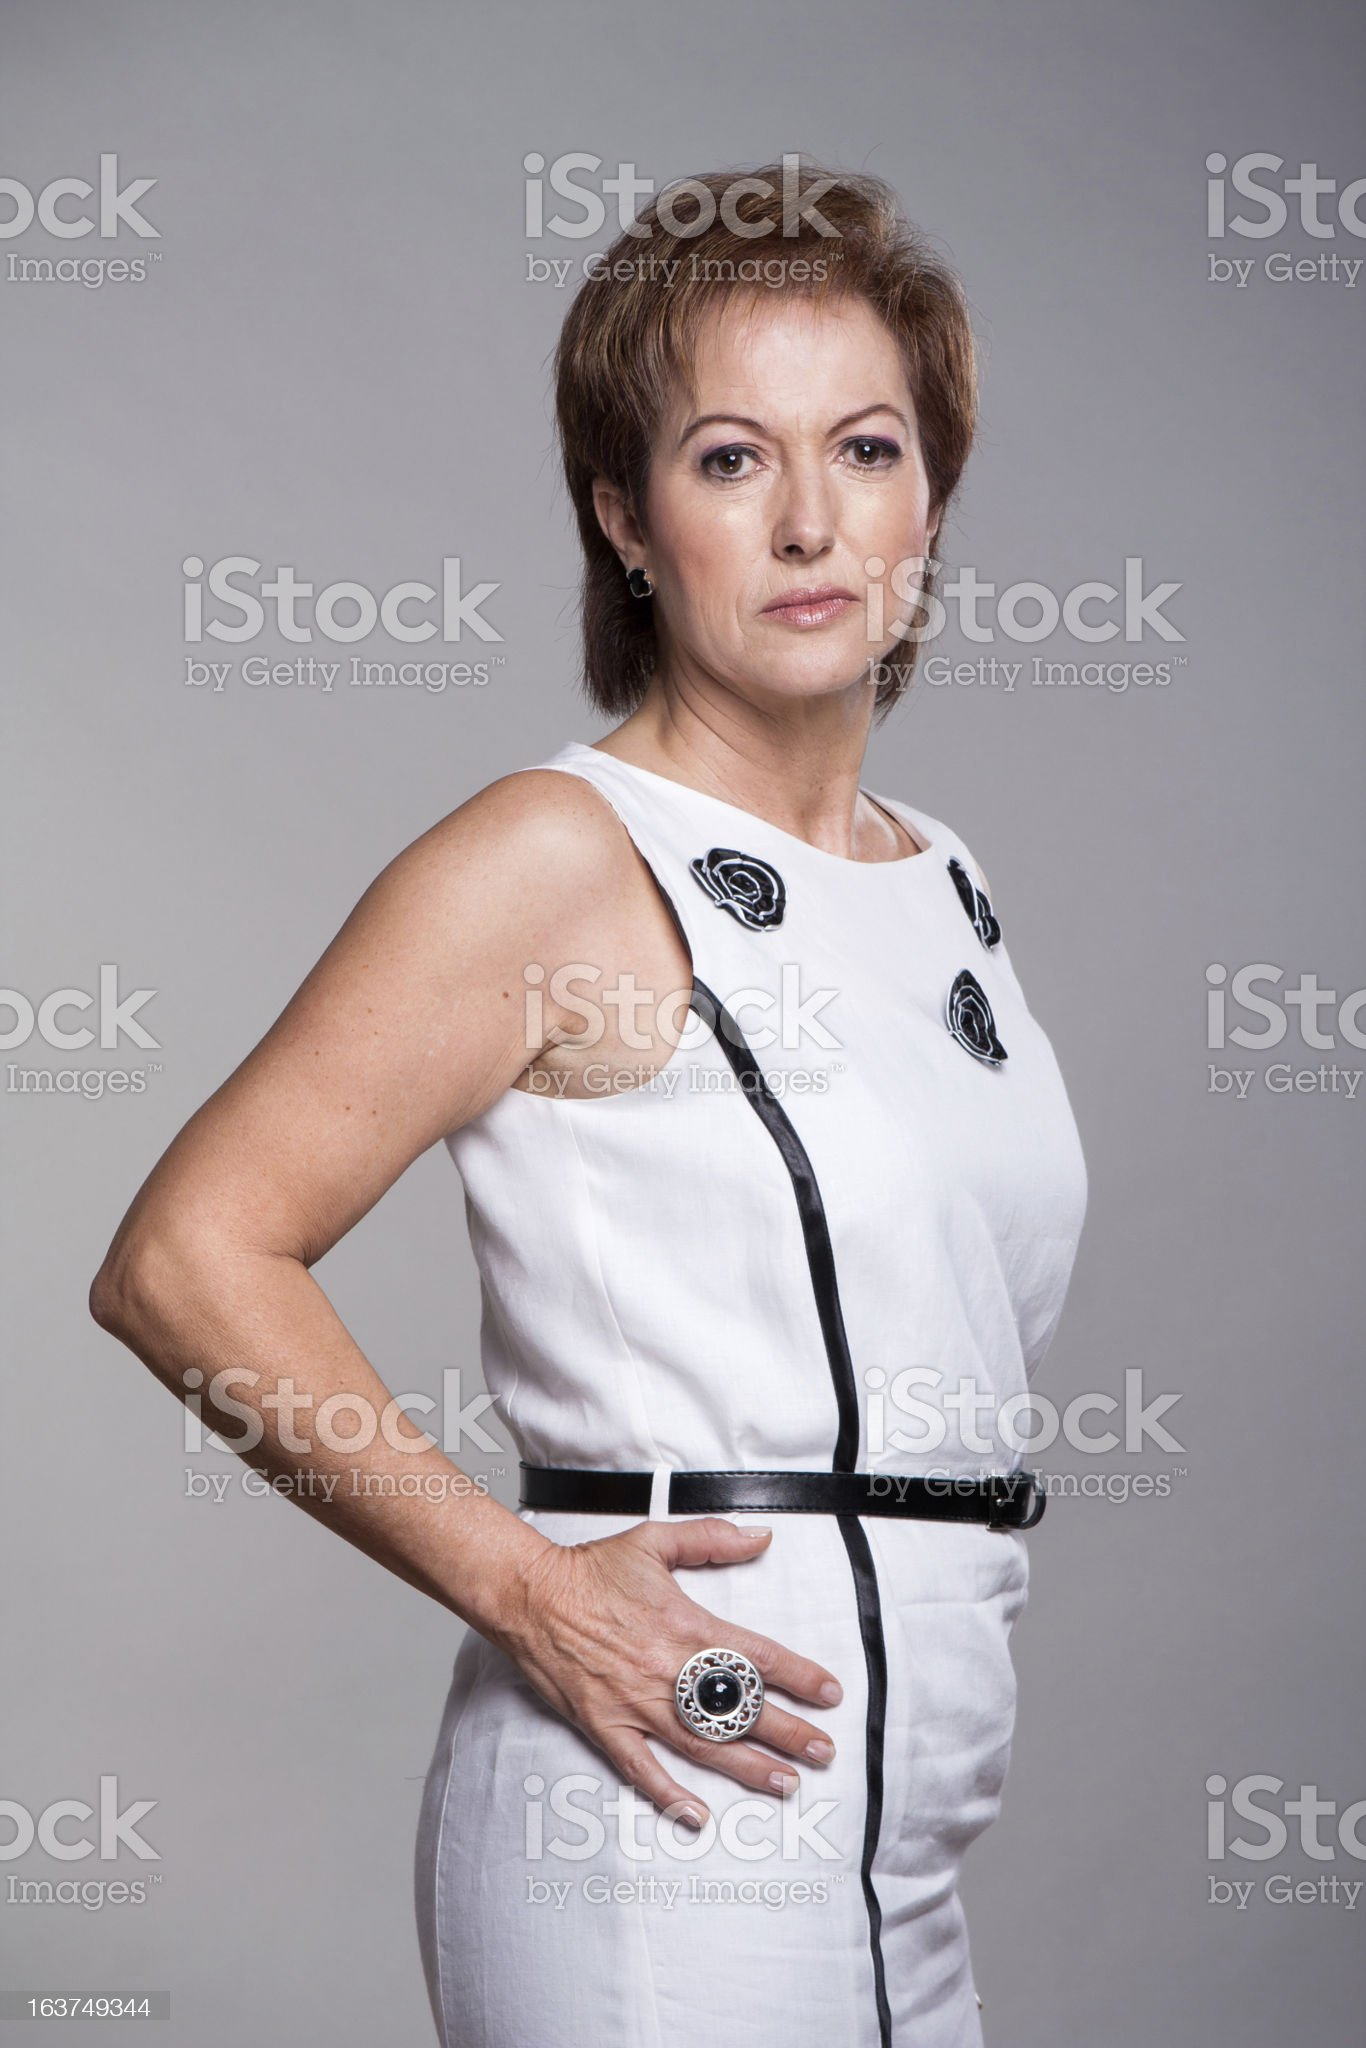 Attractive mature woman. royalty-free stock photo